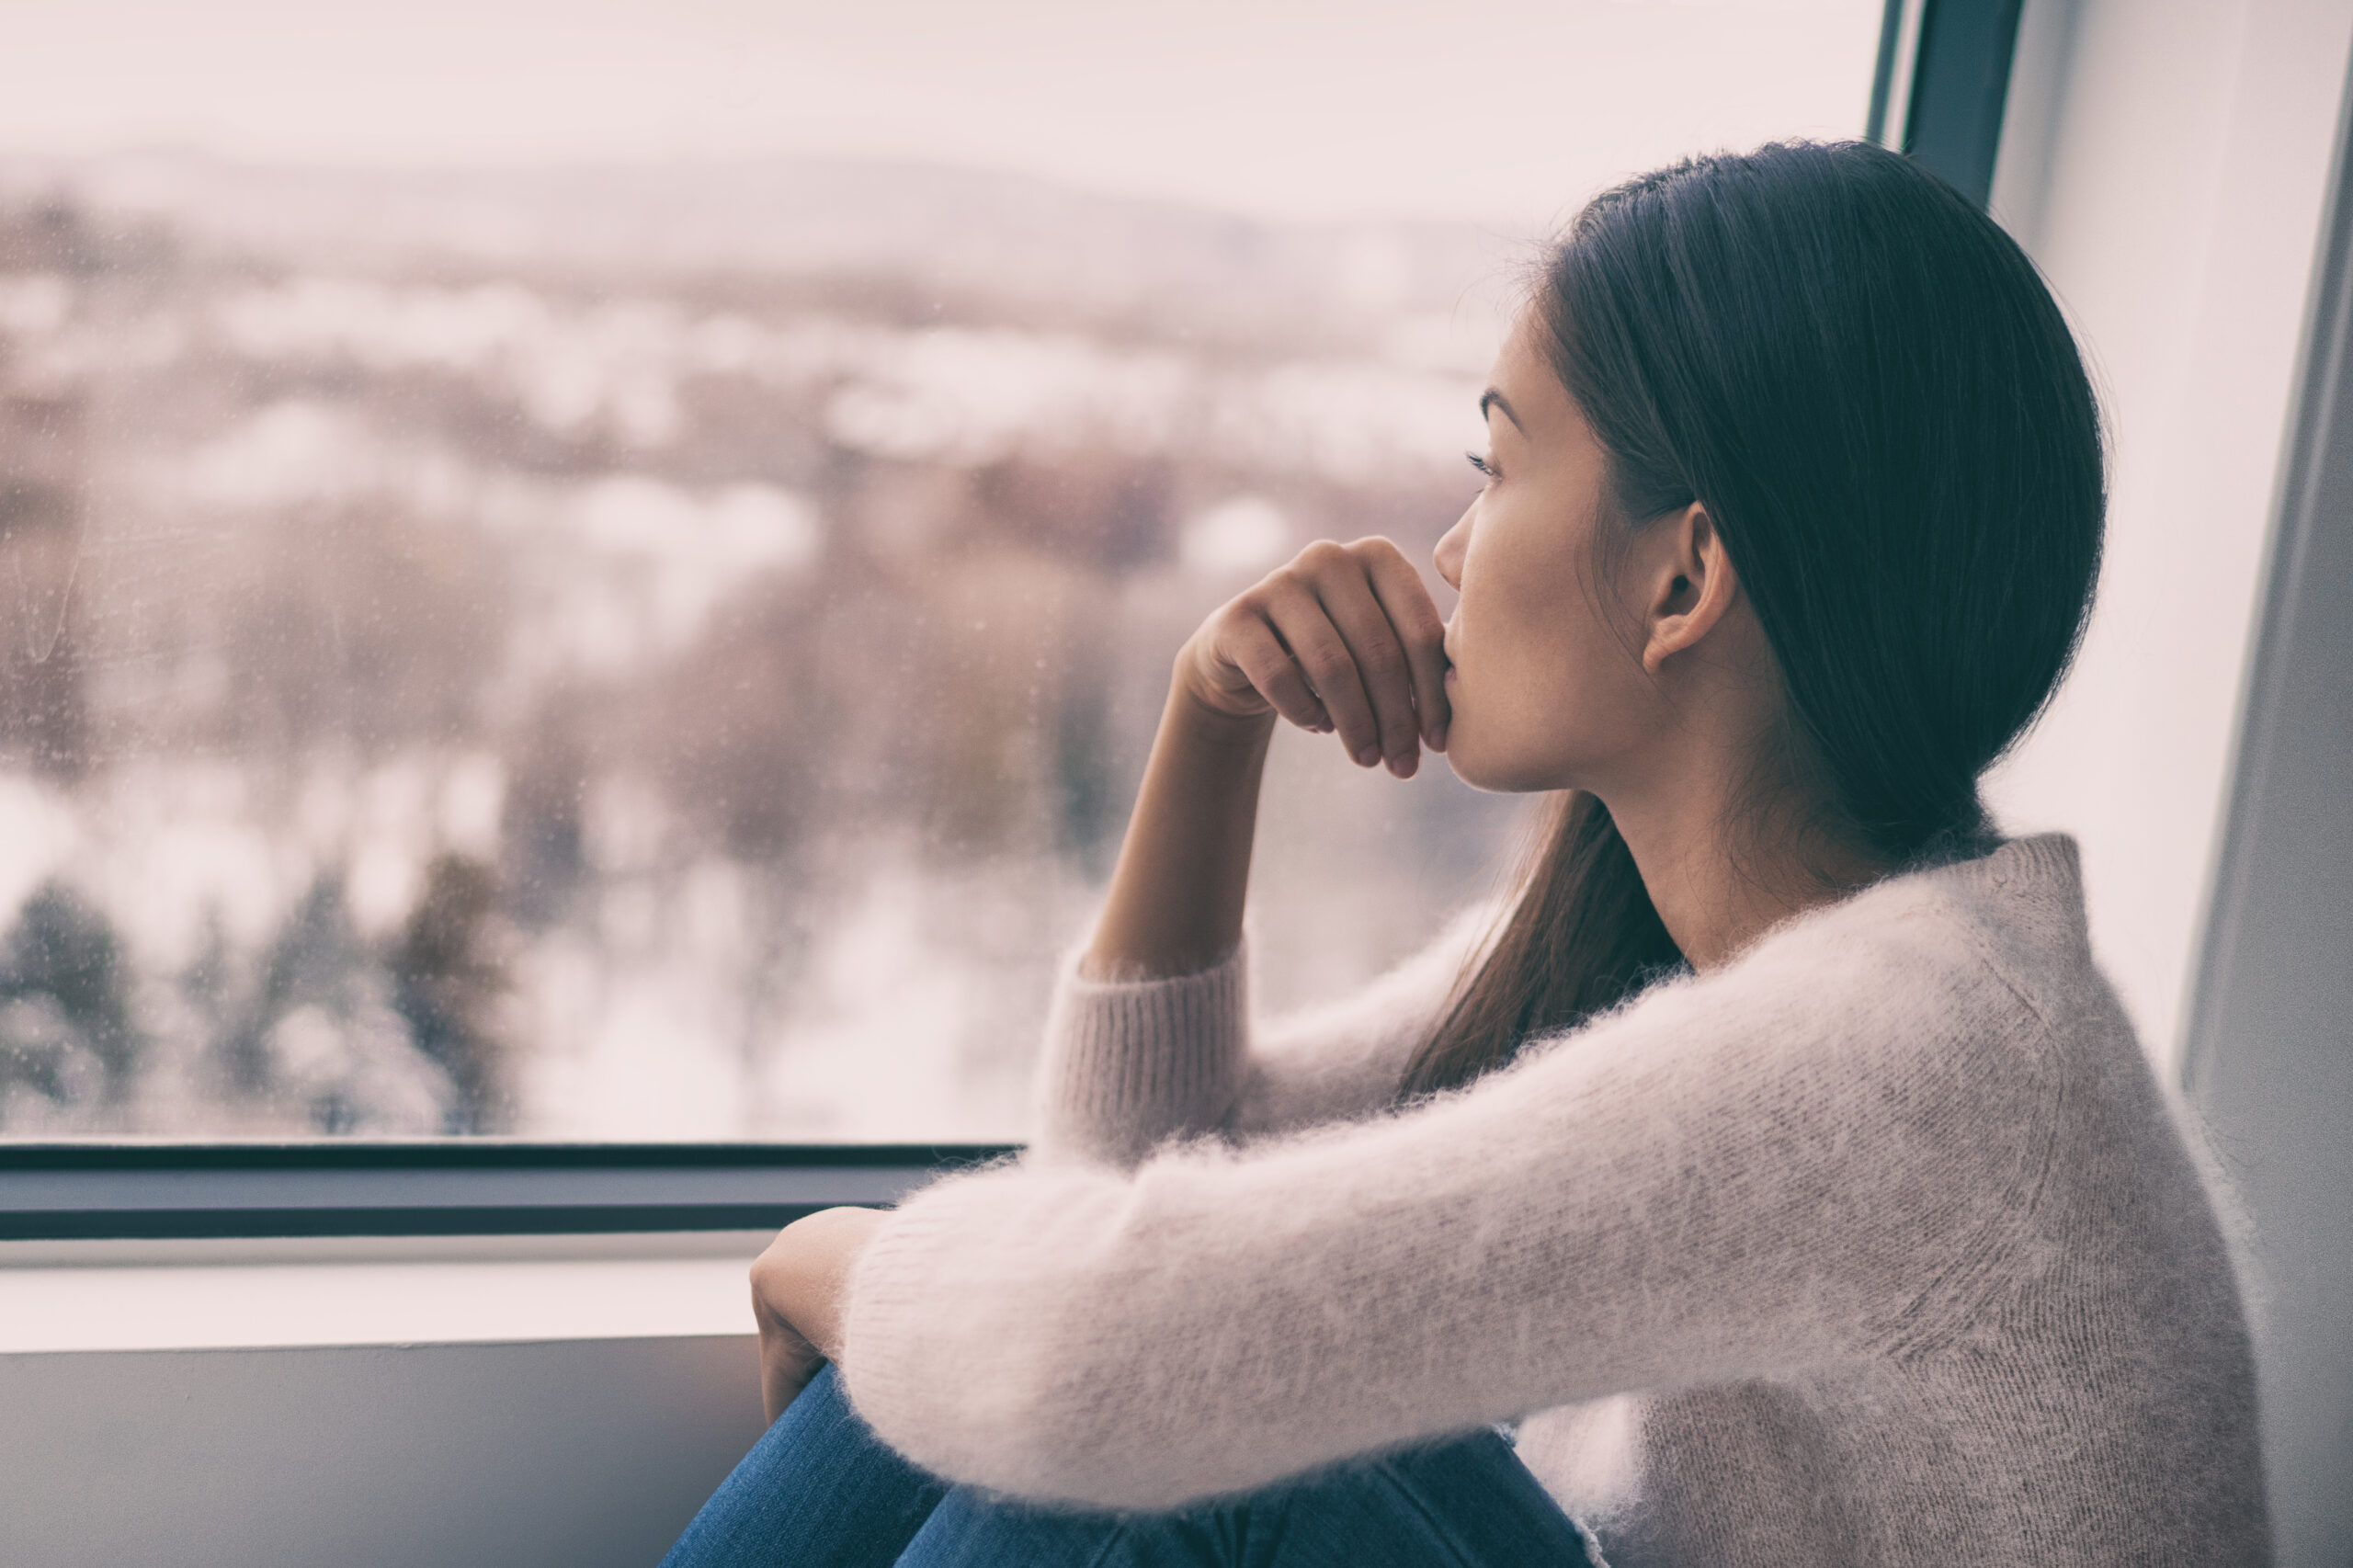 Sad pensive woman at home Winter depression - seasonal affective disorder mental health looking out the window alone. Self isolation